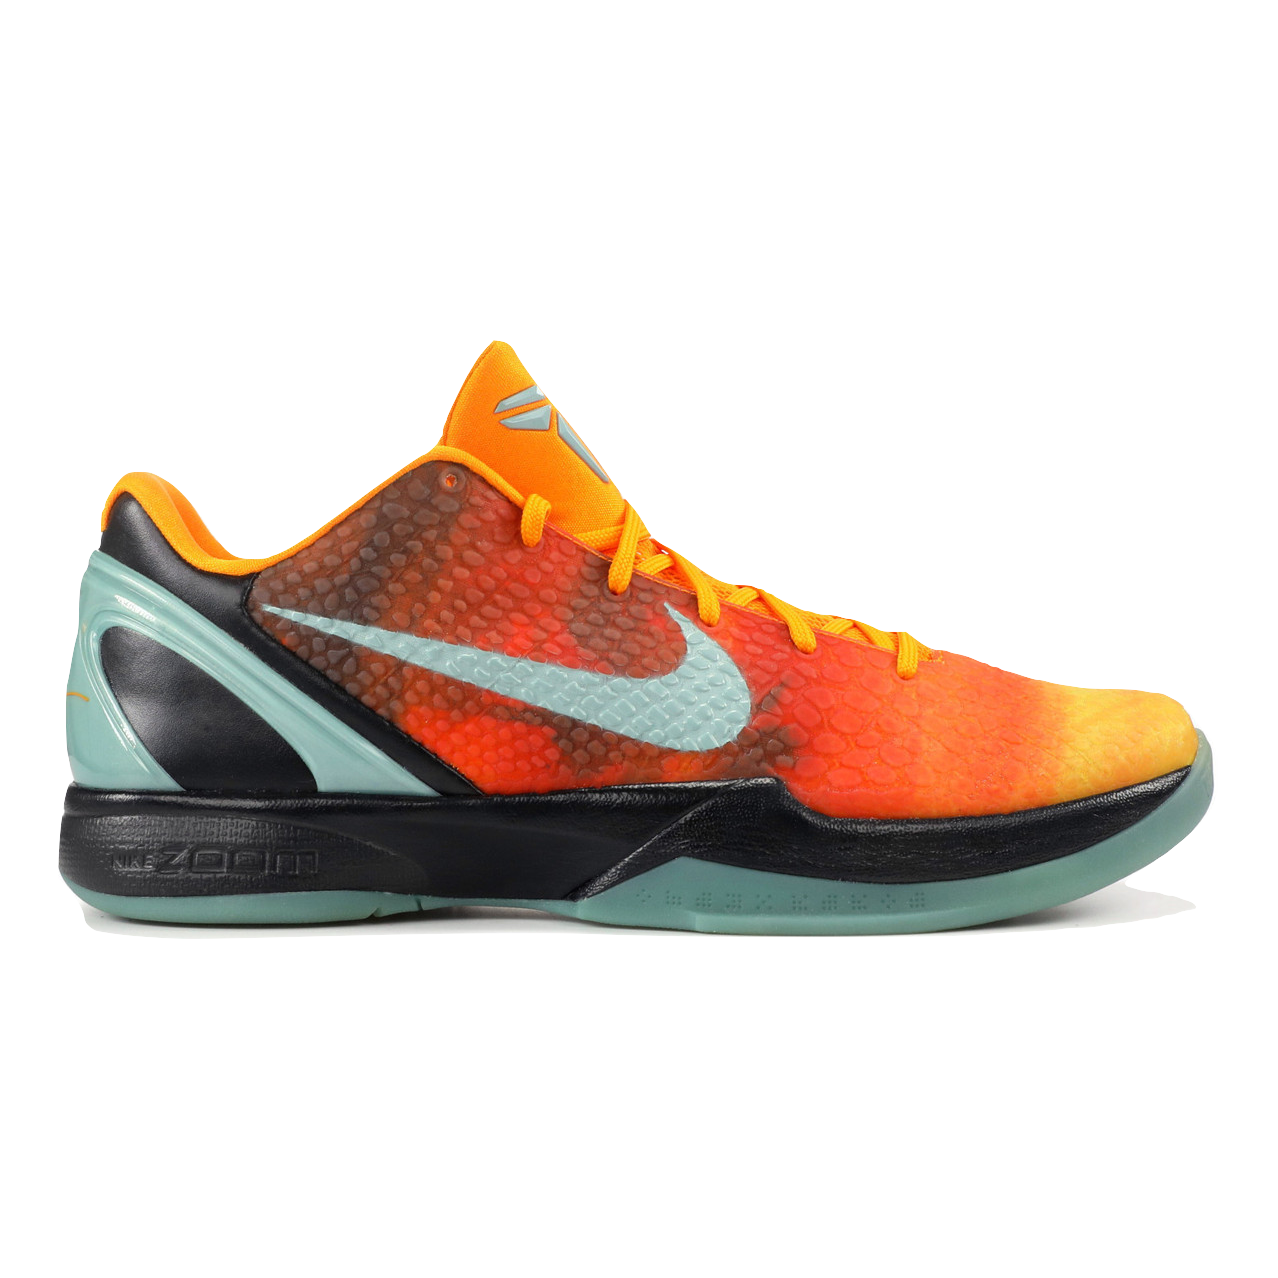 Nike Zoom Kobe VI (6) All-Star - OC Sunset